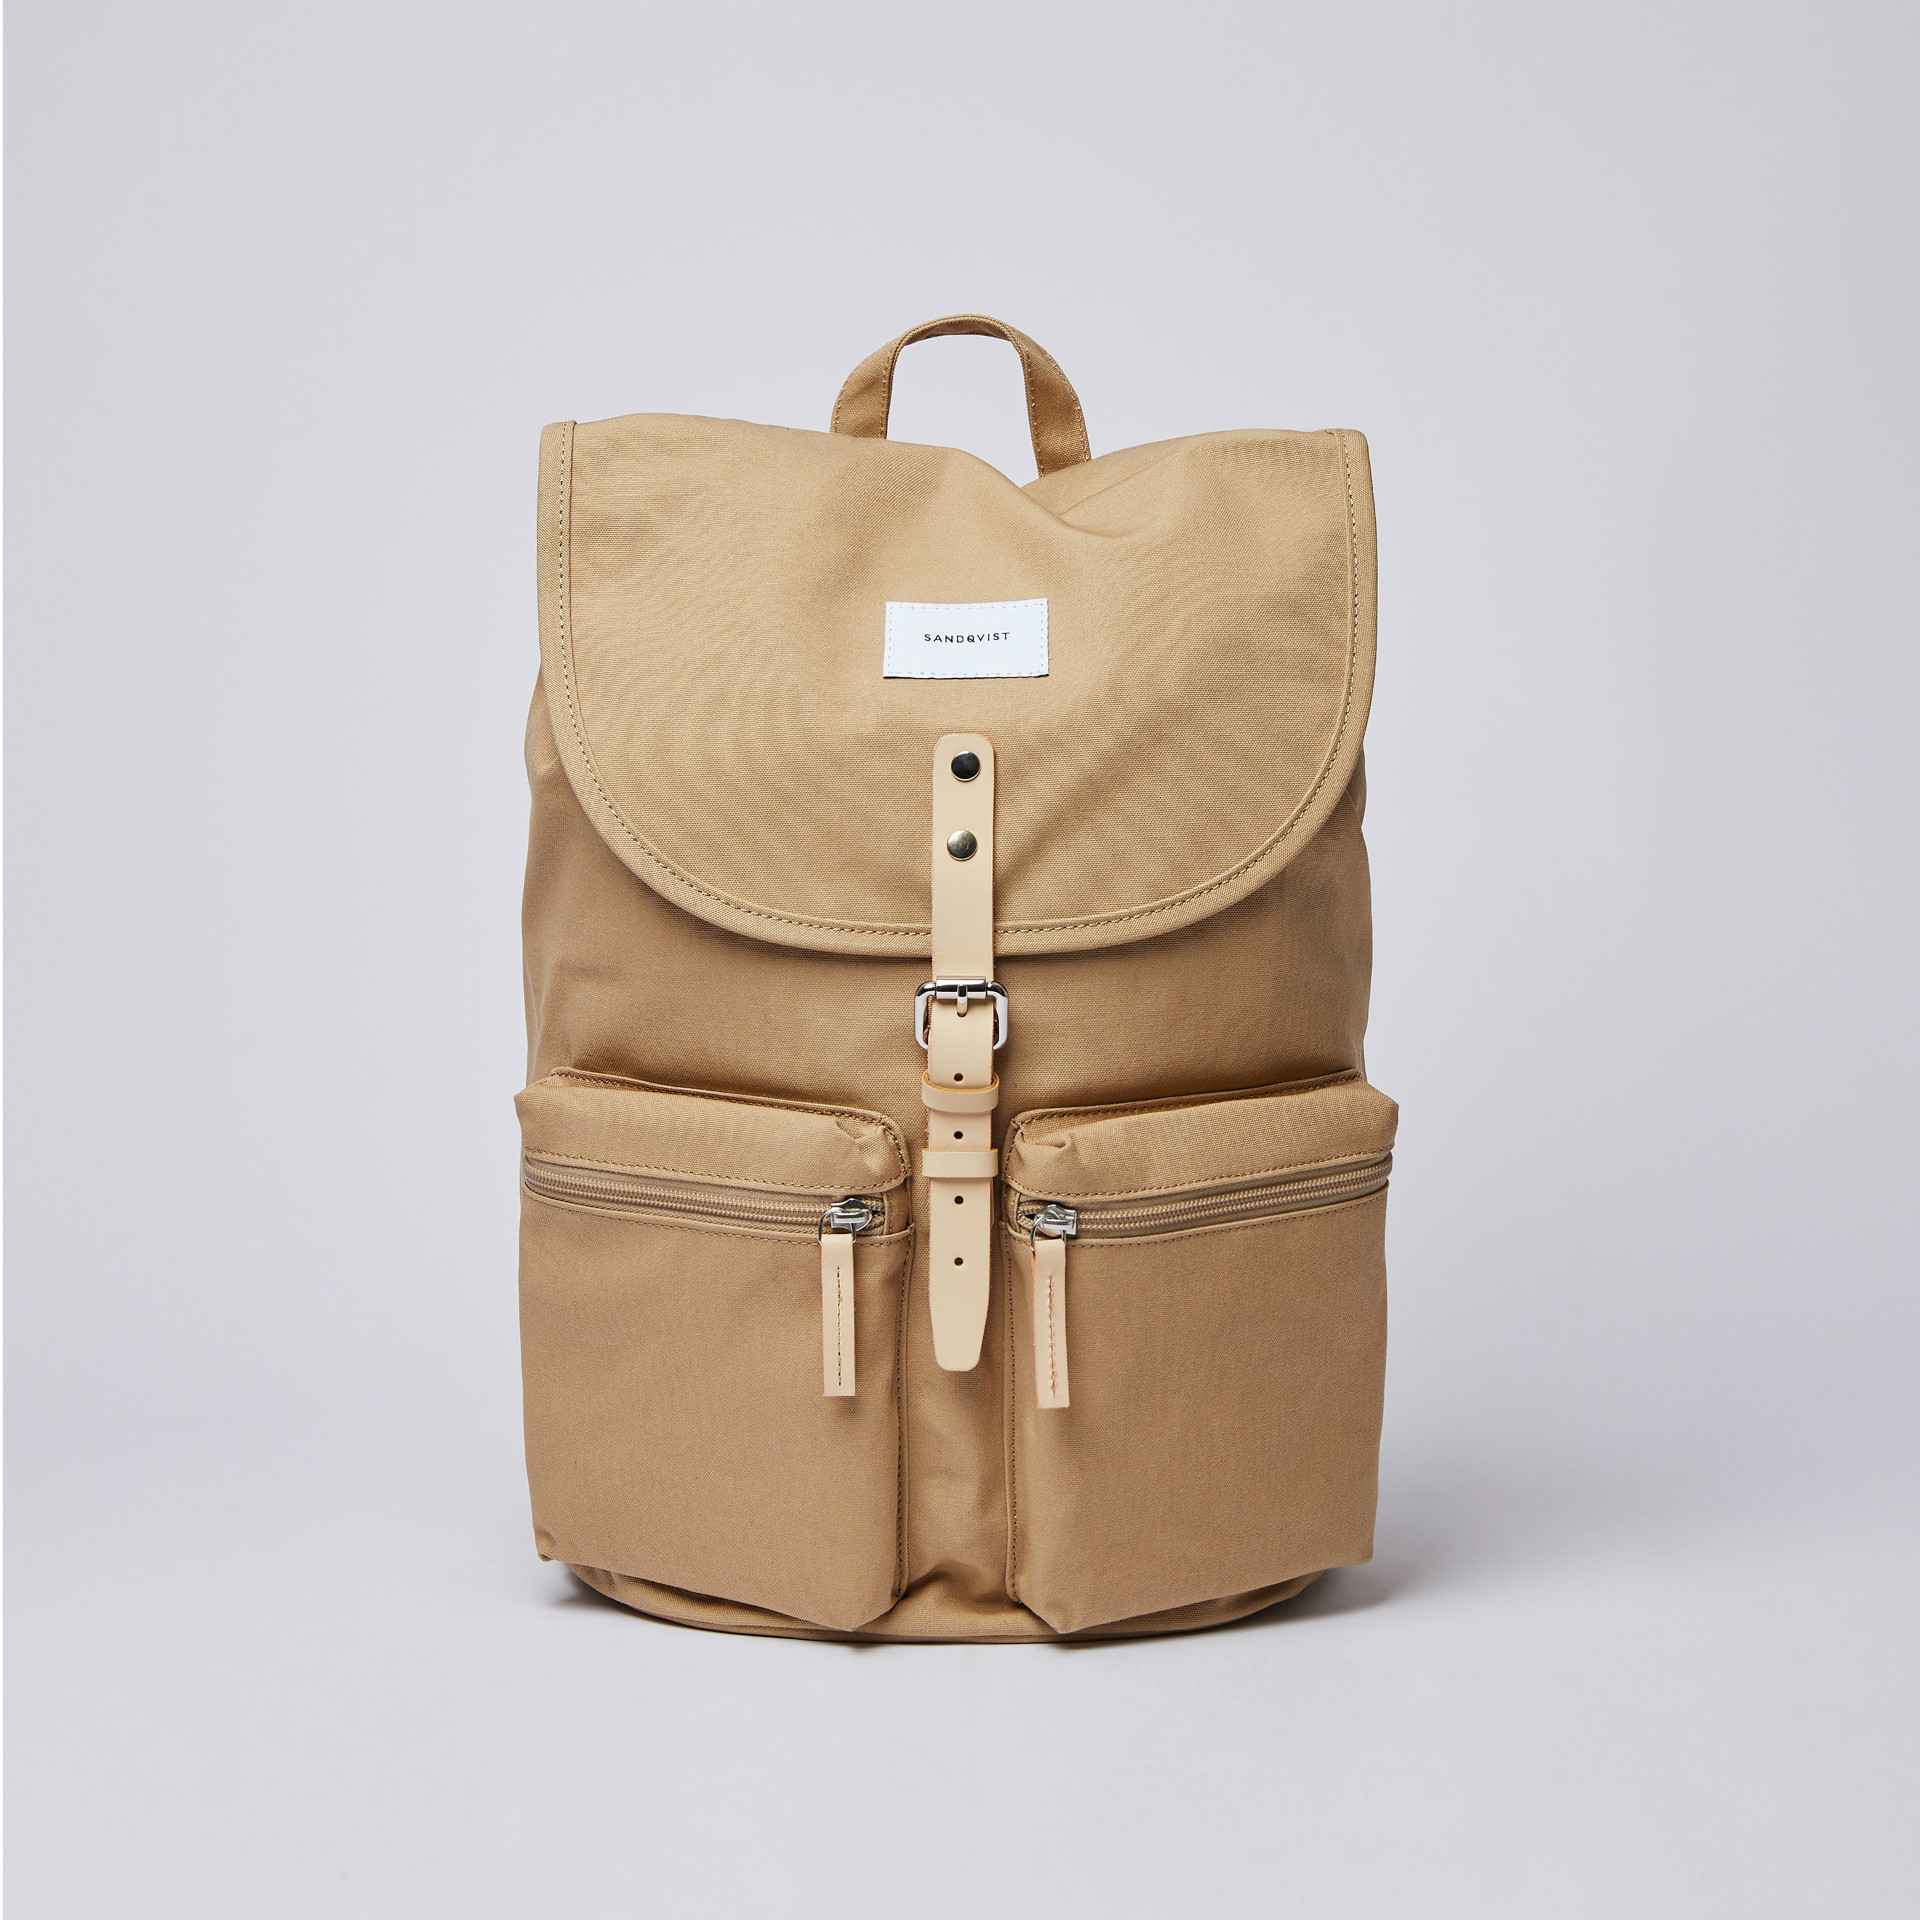 サムネイル:SANDQVIST サンドクヴィスト ROALD Beige with Natural Leather